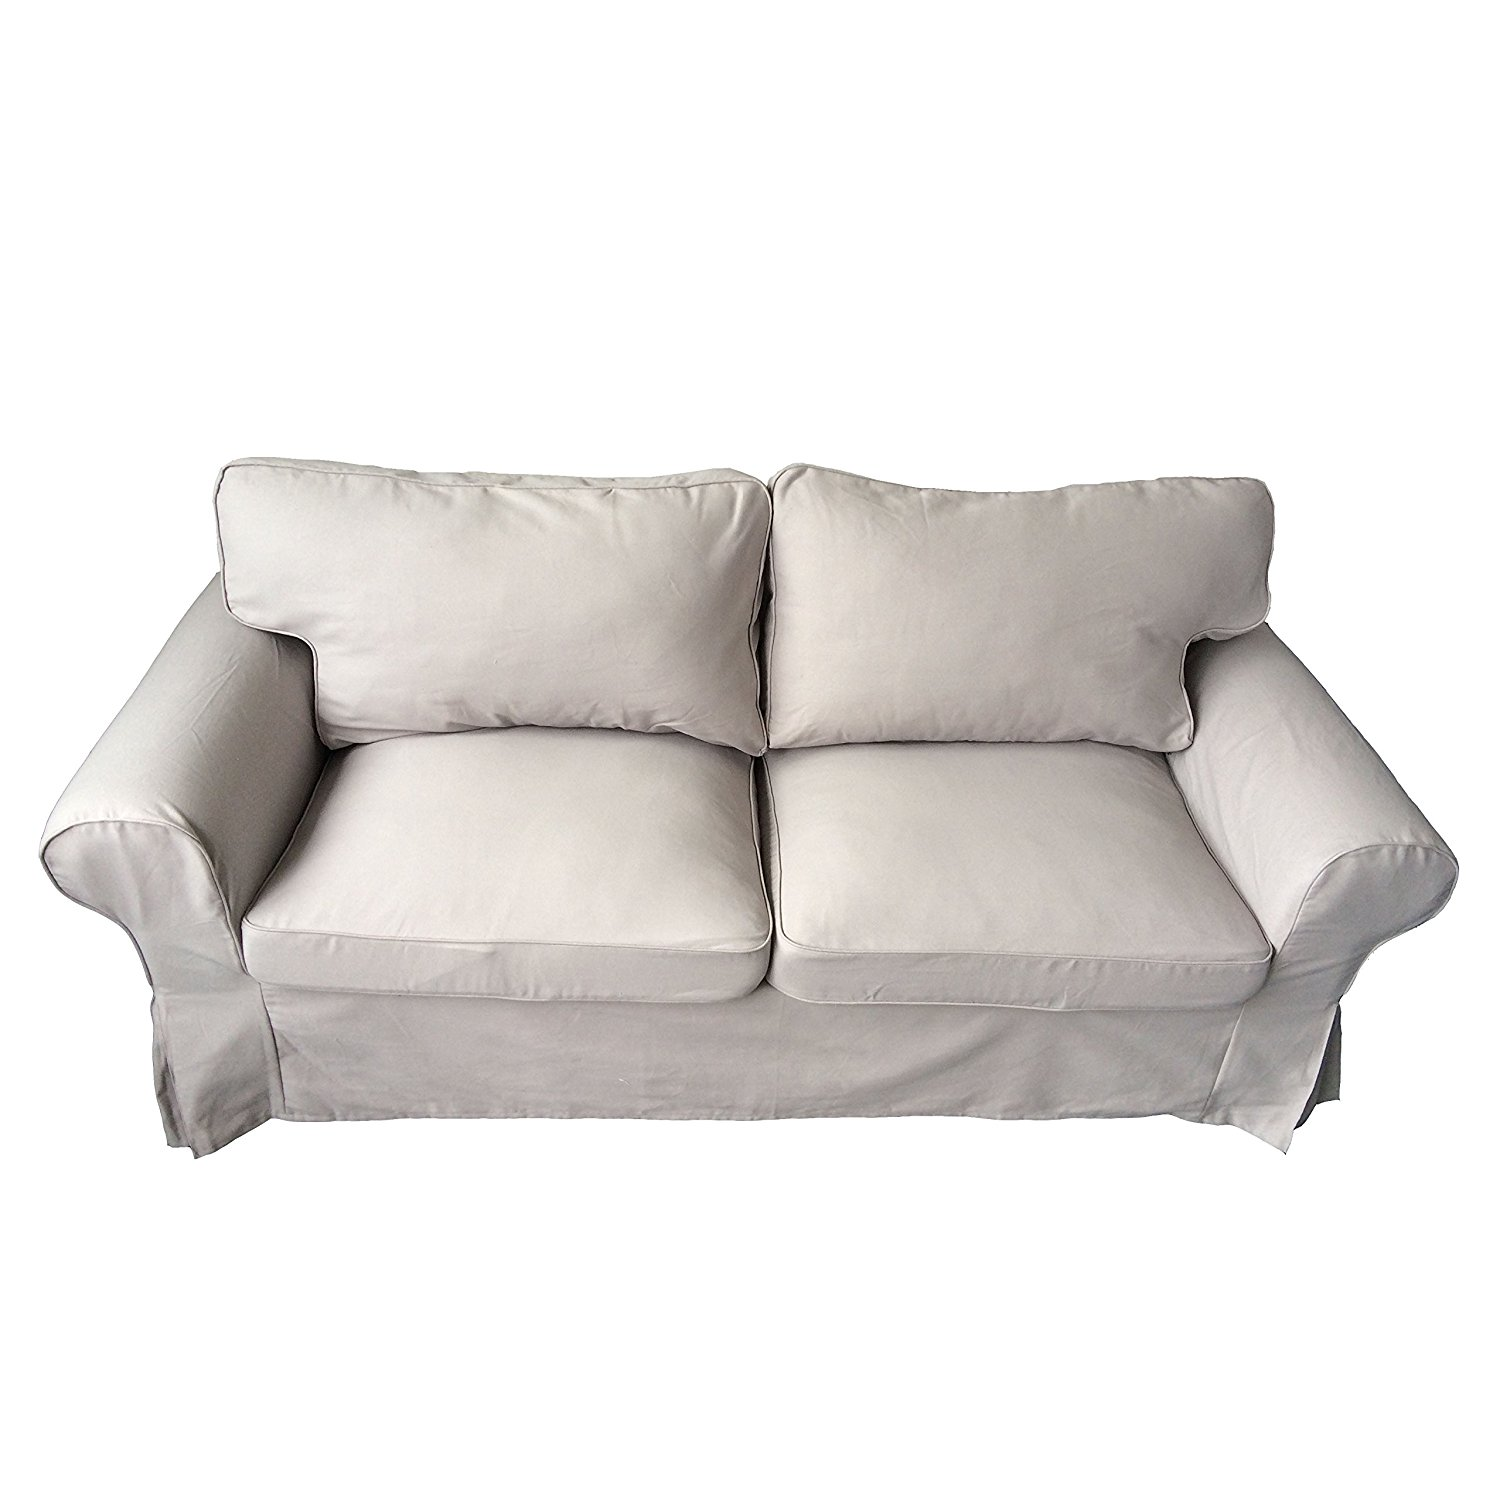 Wondrous Buy Replace Cover For Ikea Ektorp Two Seat Sofa Bed Ektorp Pabps2019 Chair Design Images Pabps2019Com